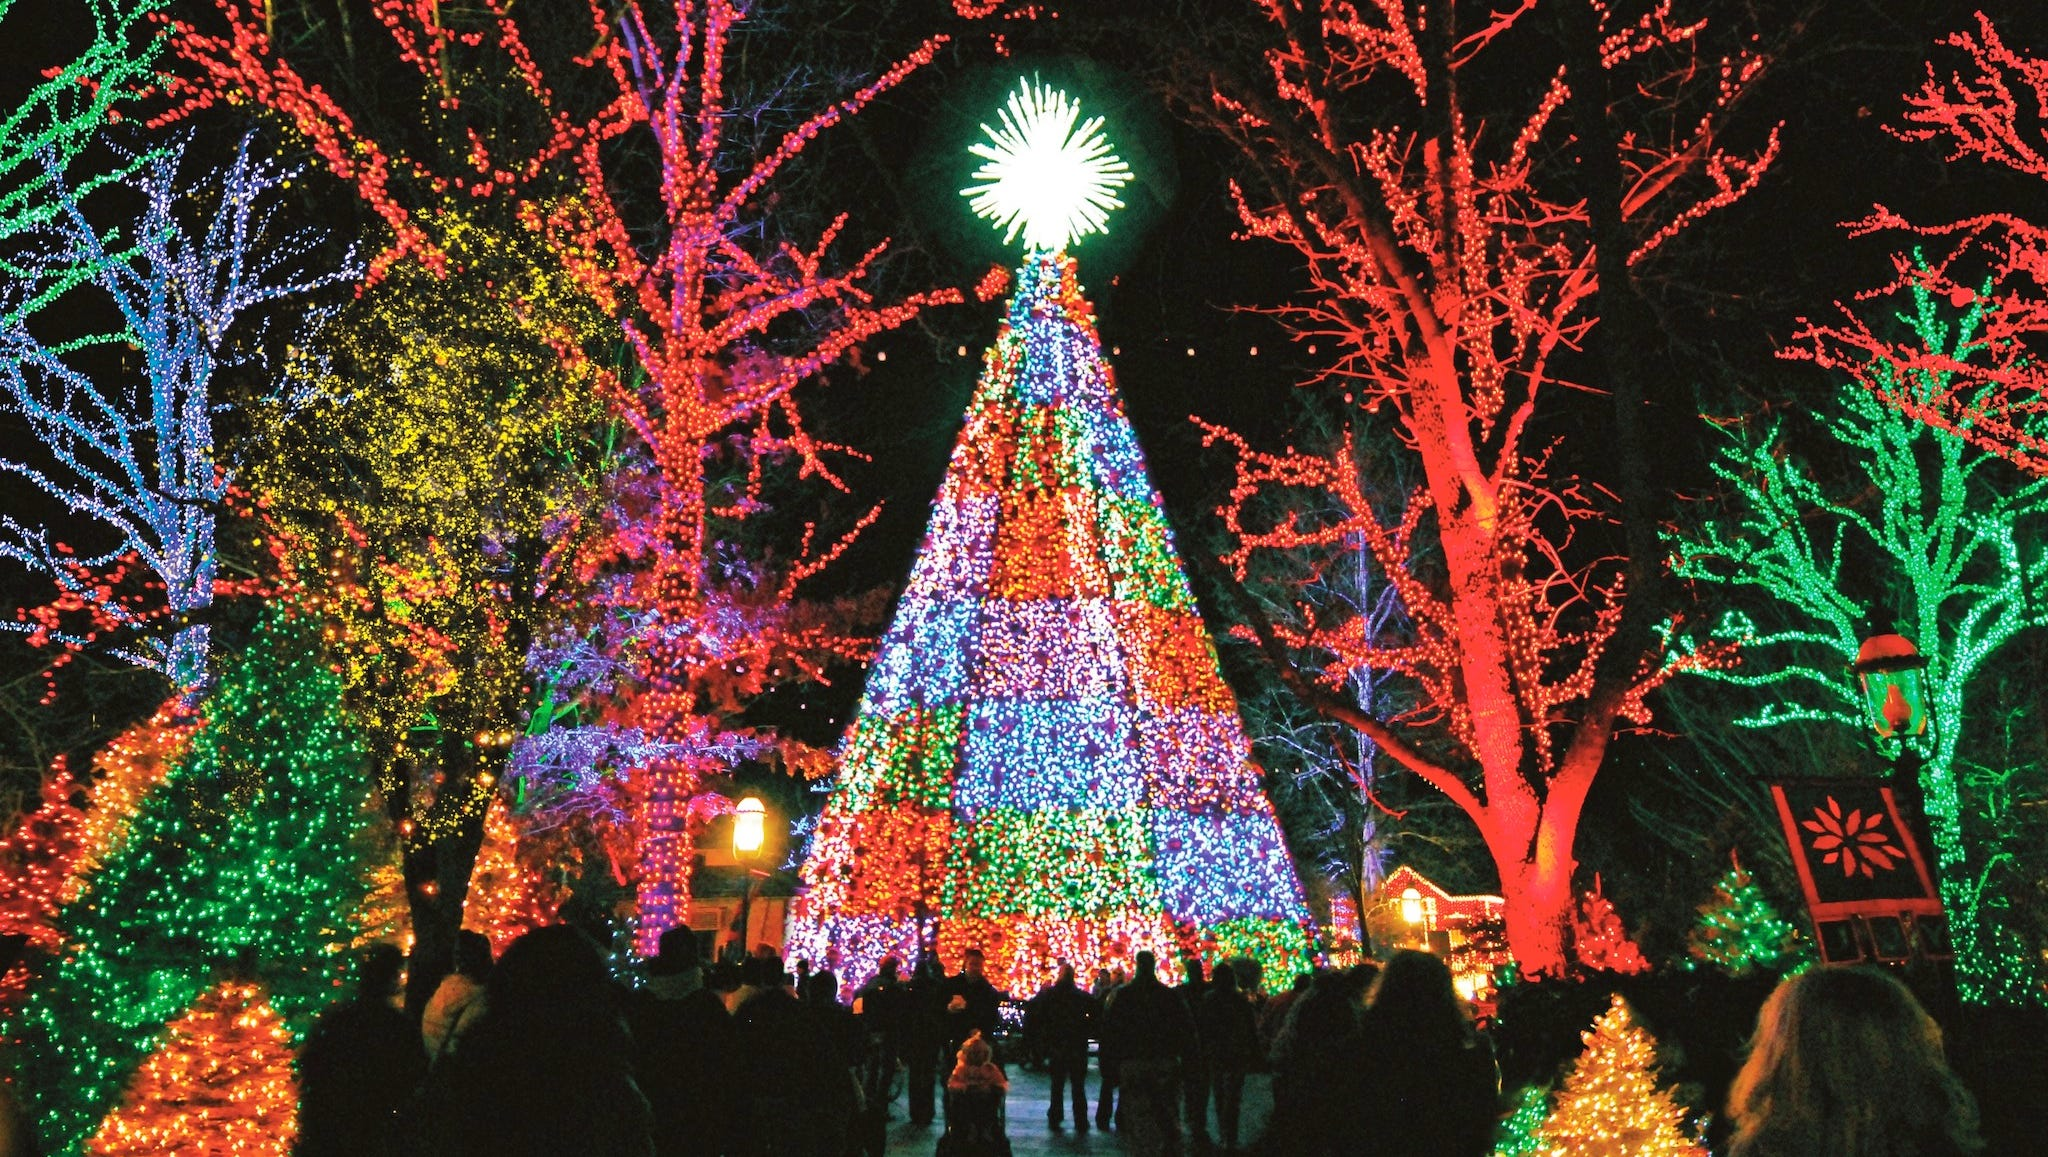 Vote For The Best Public Holiday Lights Display